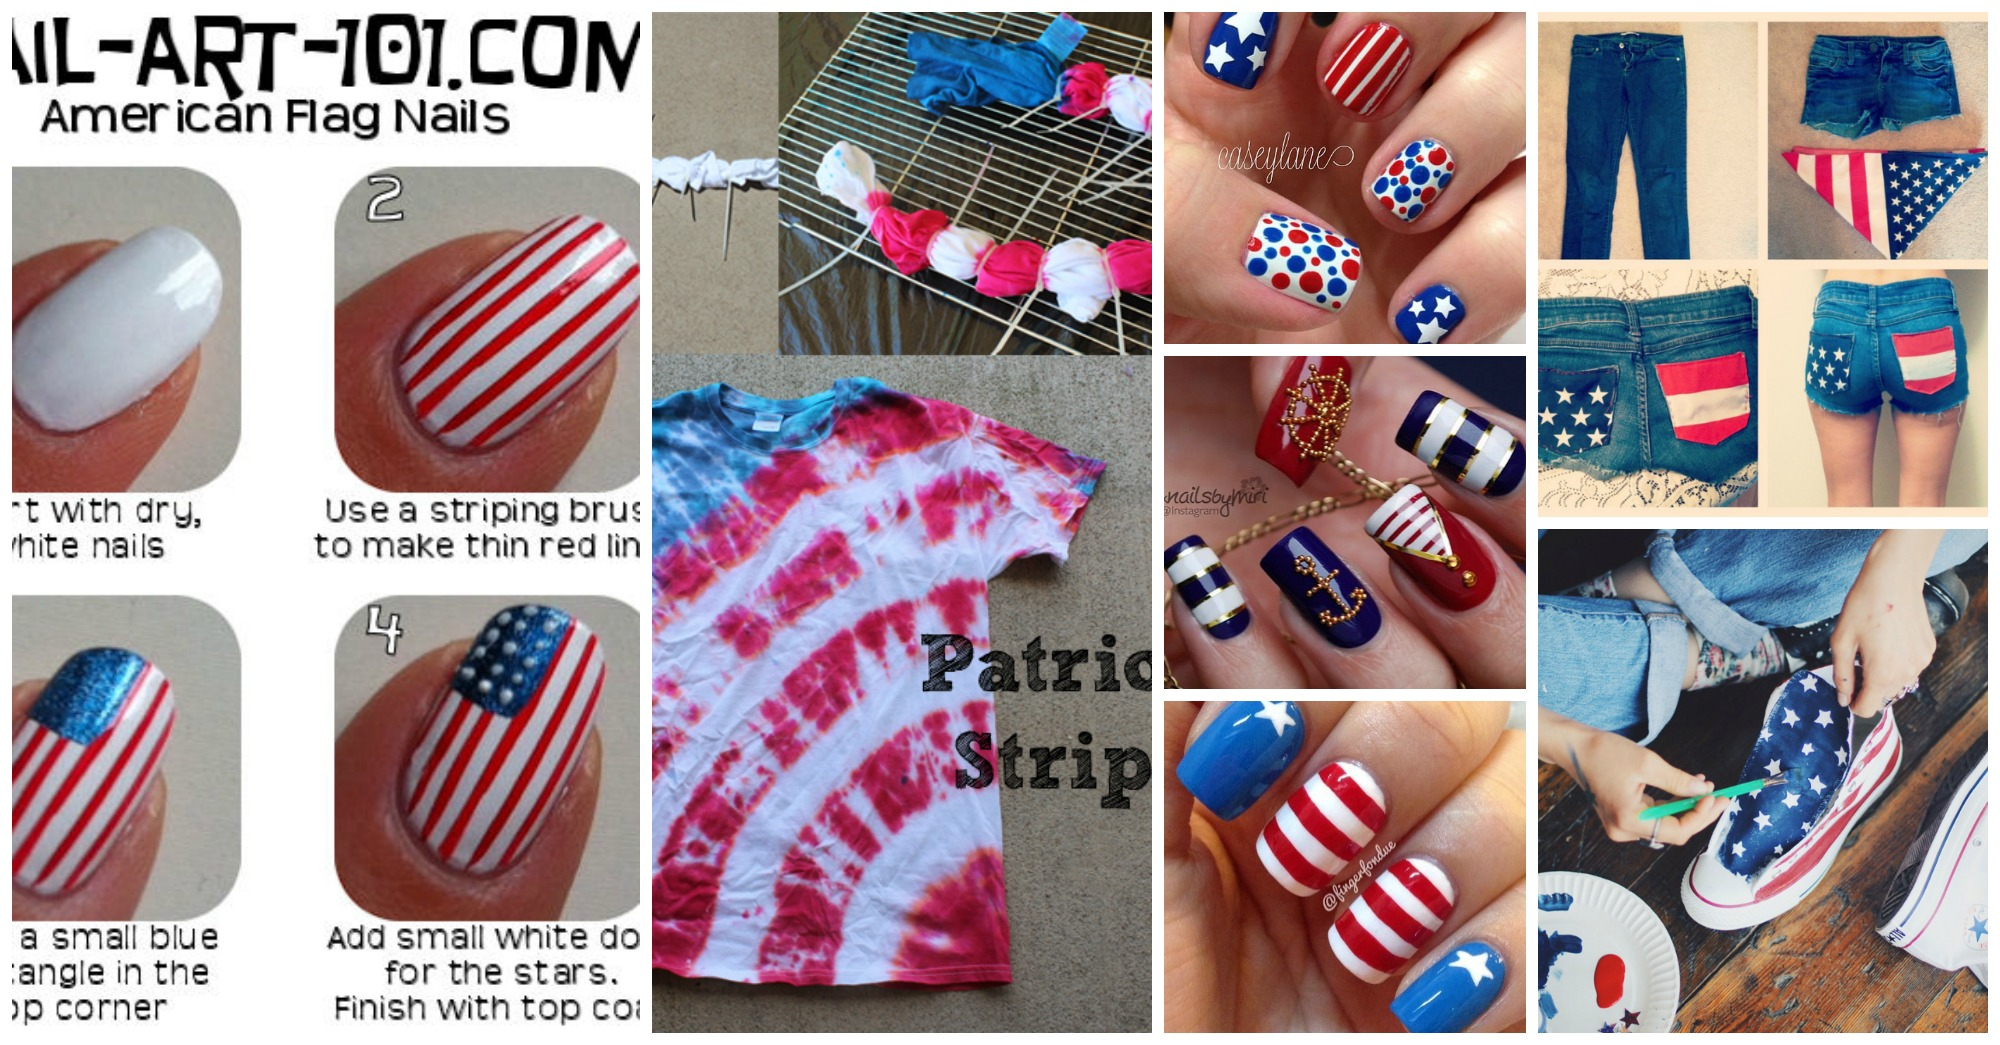 18 Fashionable 4th of July Inspired Ideas You Will Love to Copy